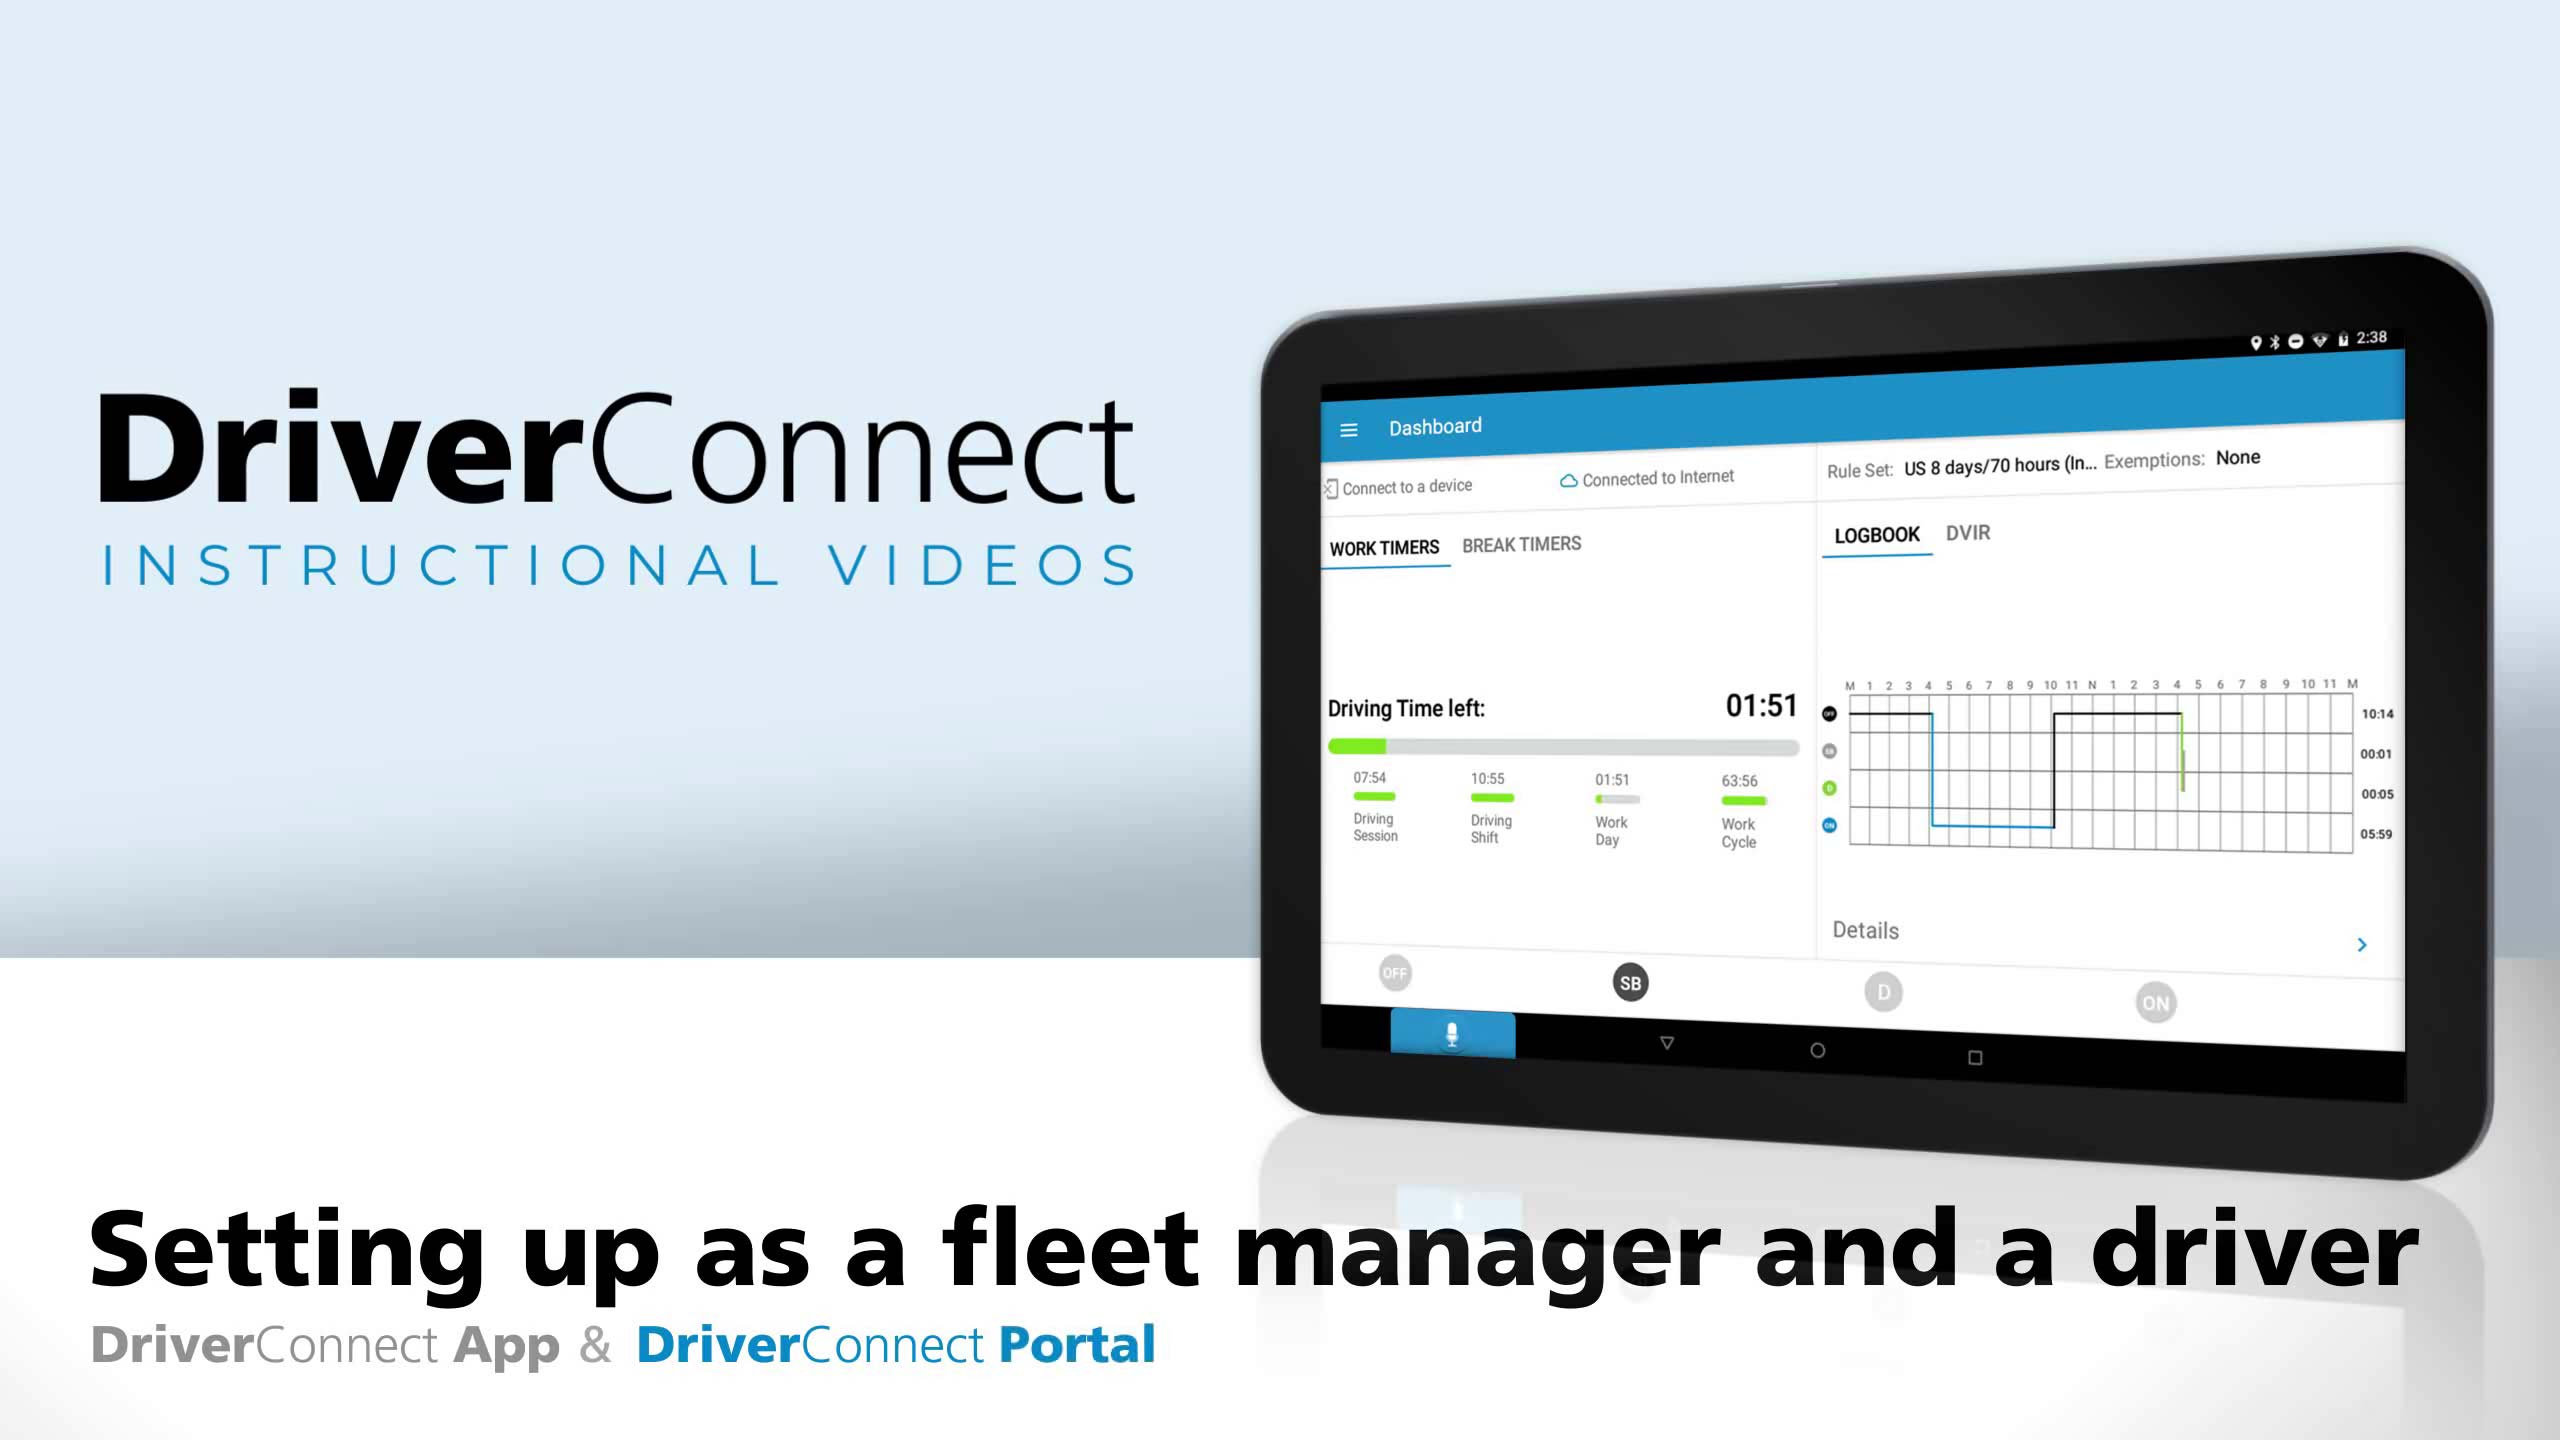 DC App & Portal Setting up as a fleet manager and a driver